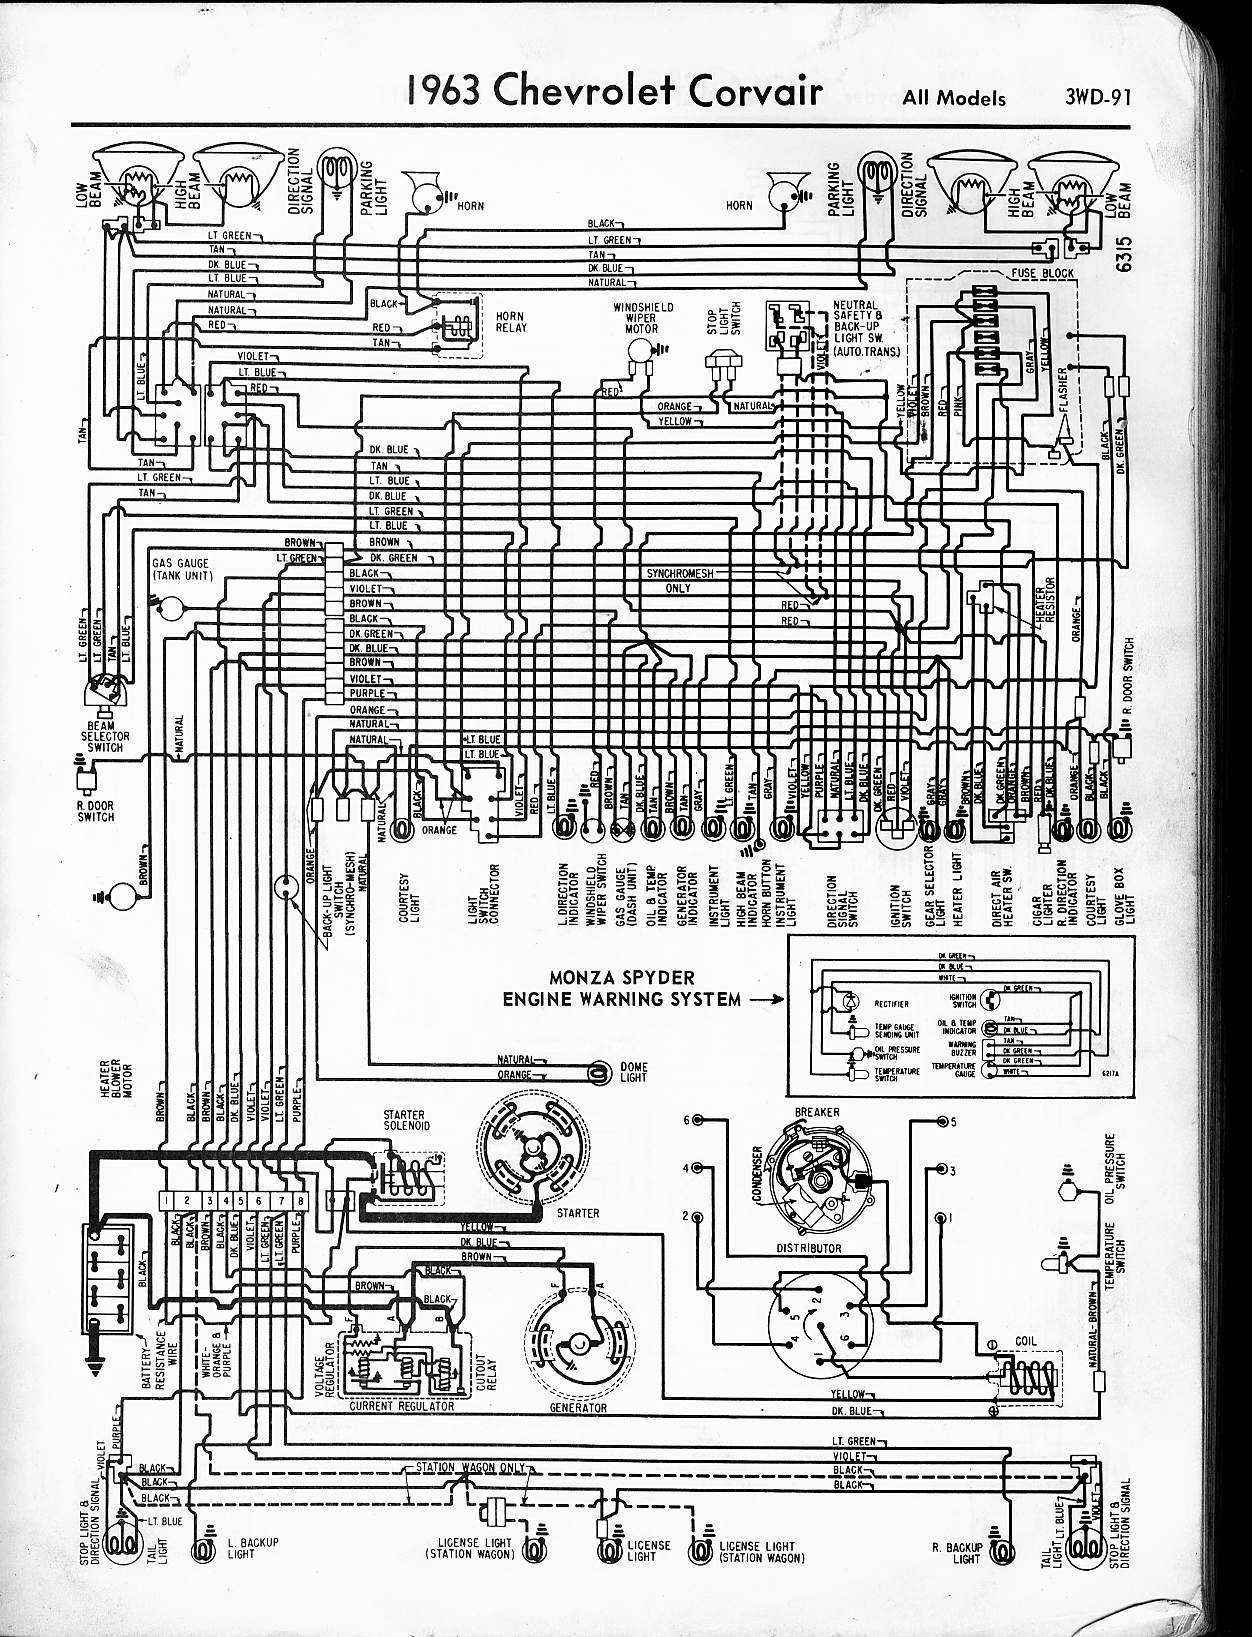 Chevy Truck Wiring Diagram Furthermore 57 Chevy Coil Wiring Diagram on 1966 c10 chevy truck wiring diagrams, 1964 chevy truck wiring diagram, 1964 chevy impala fuse box,